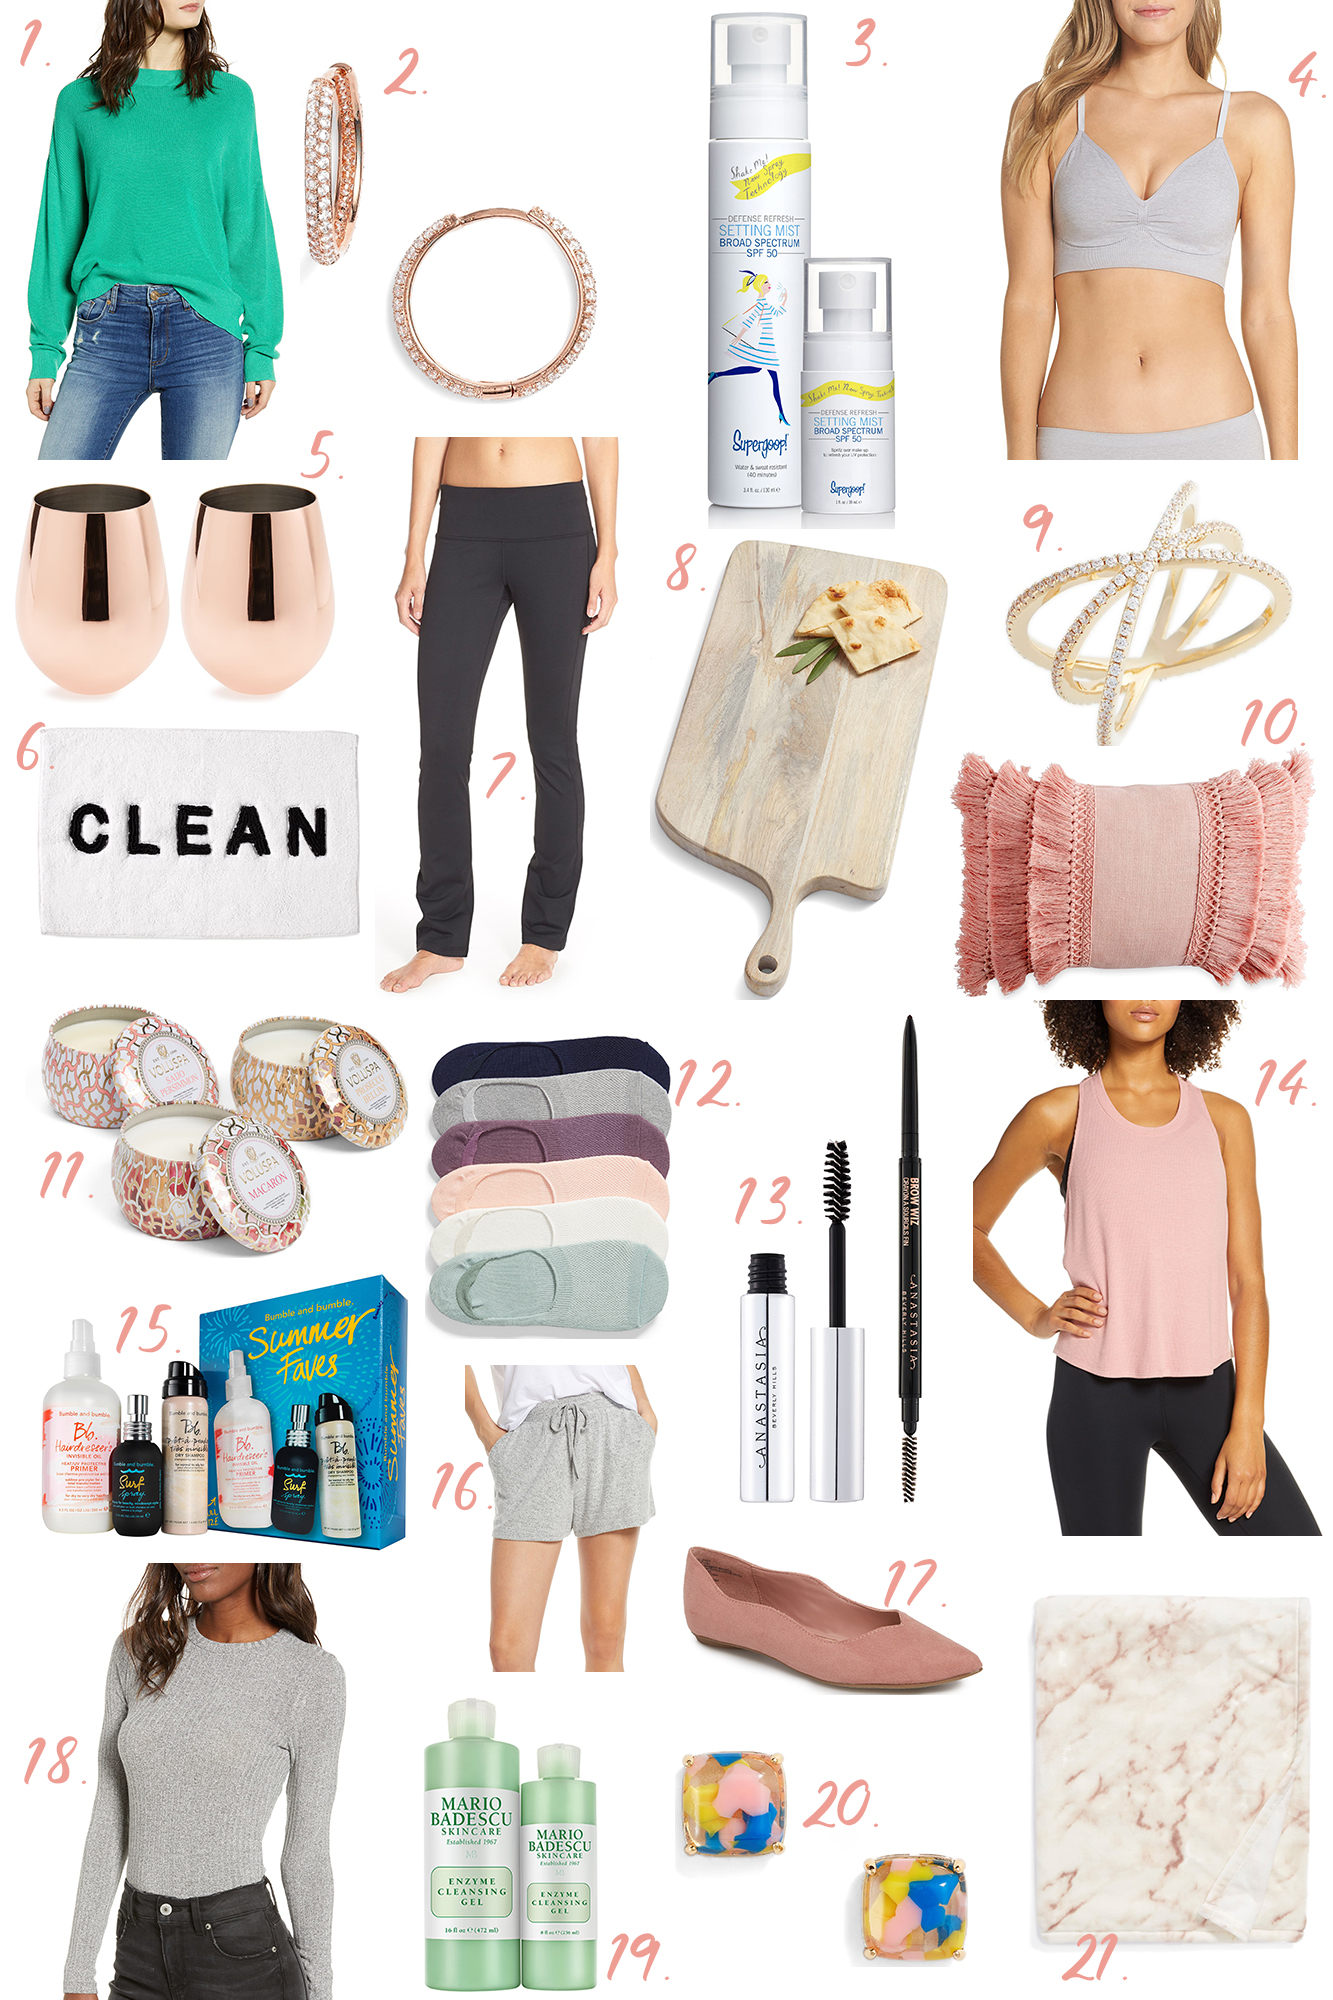 Nordstrom Anniversary Sale 2019 on a budget - Rounded up my NSale favorites under $30 in all categories: fashion, shoes, beauty, home and more!